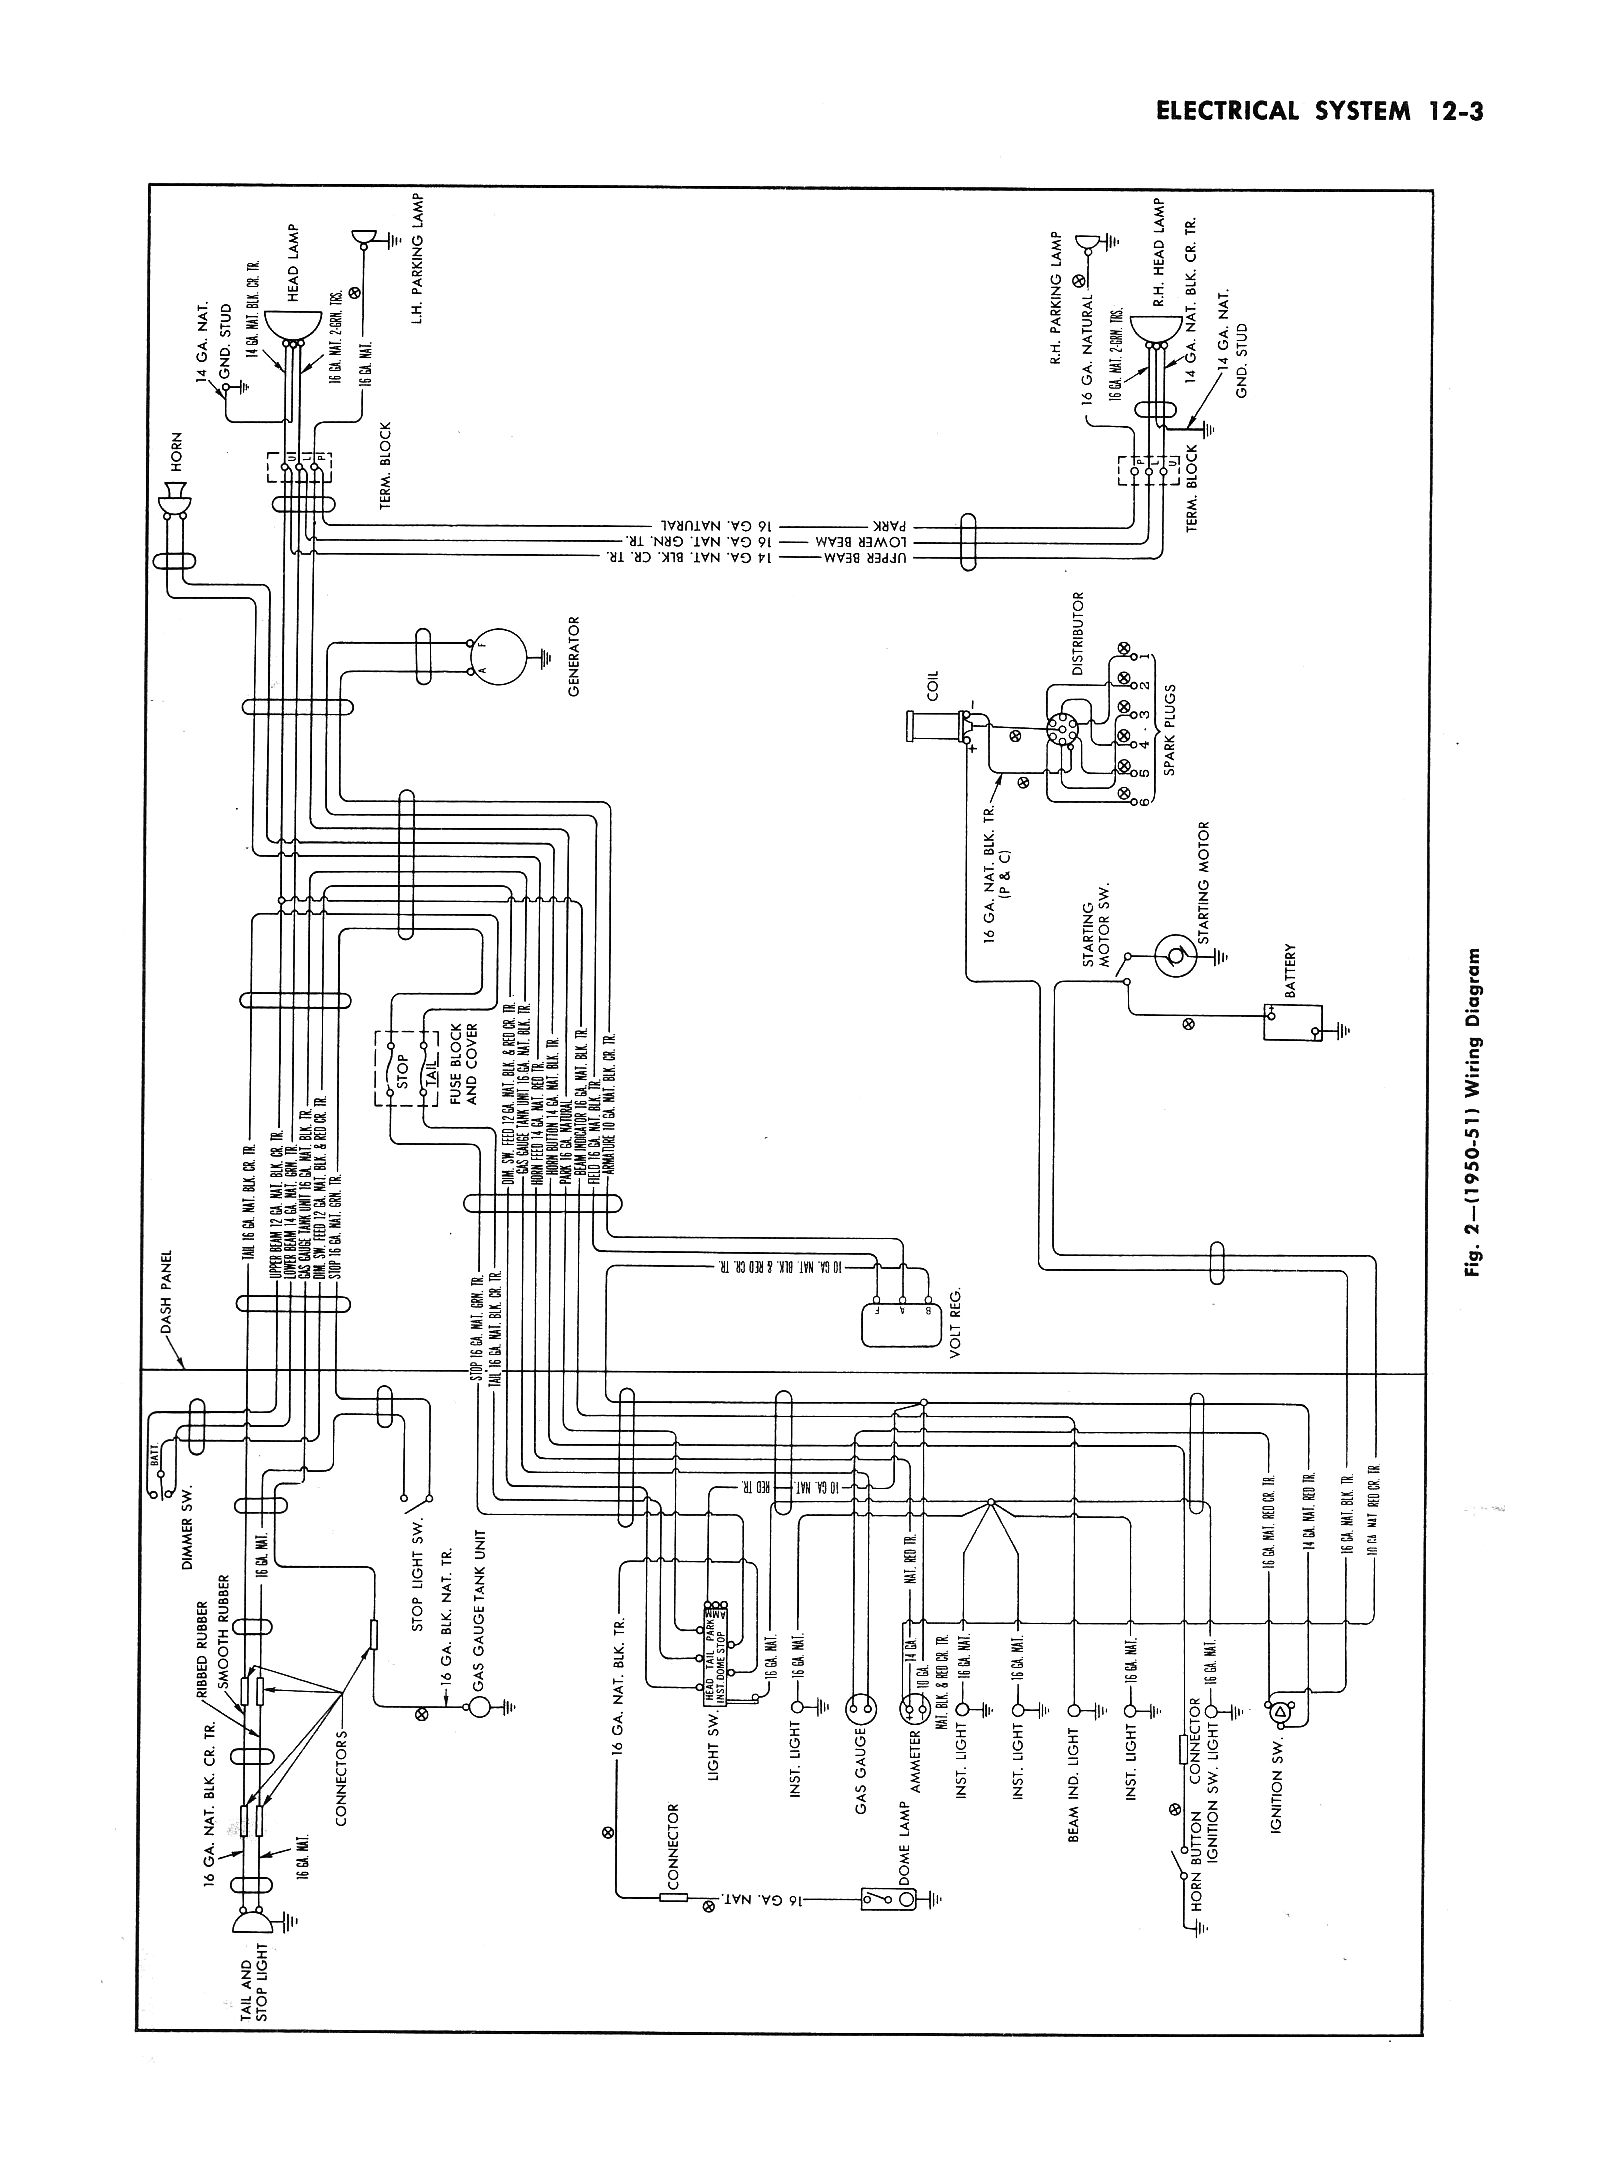 1983 chevy c10 engine diagram